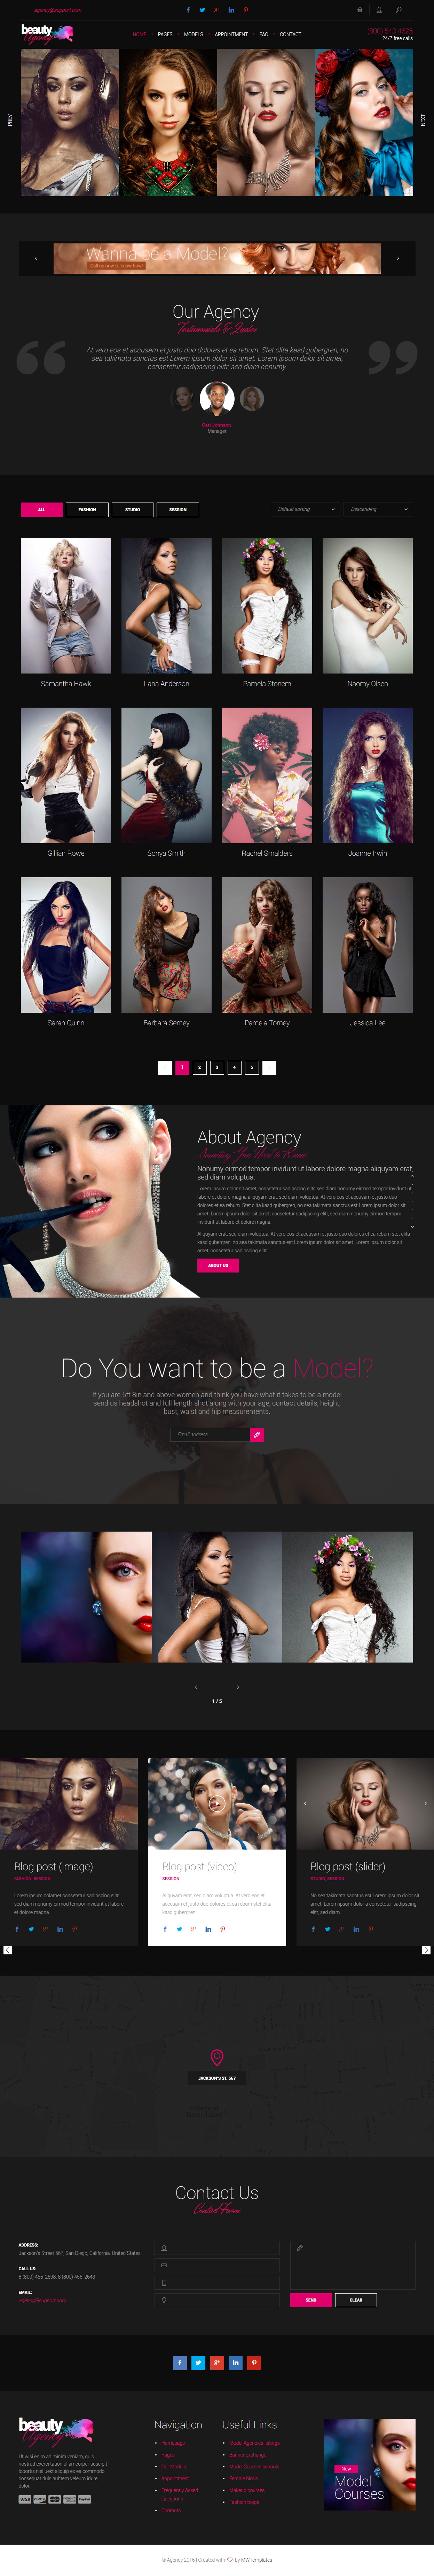 20 Best Responsive Fashion HTML5 Templates 2017 - Responsive Miracle